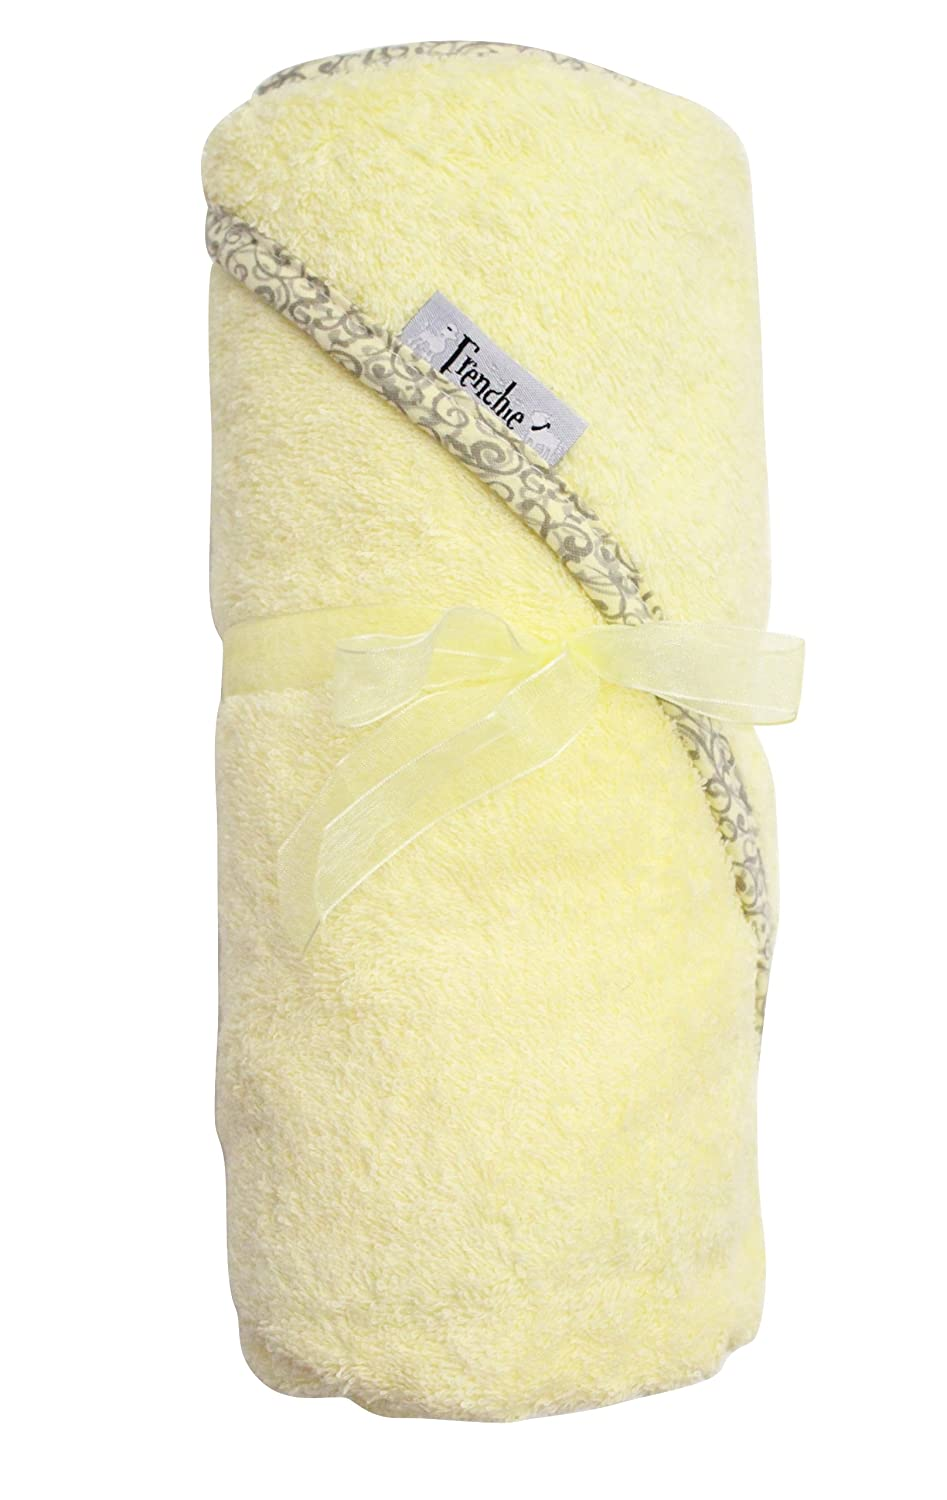 Extra Large 40x30 Absorbent Hooded Towel, Solid Yellow with Swirl Print, Frenchie Mini Couture BabyCenter 218